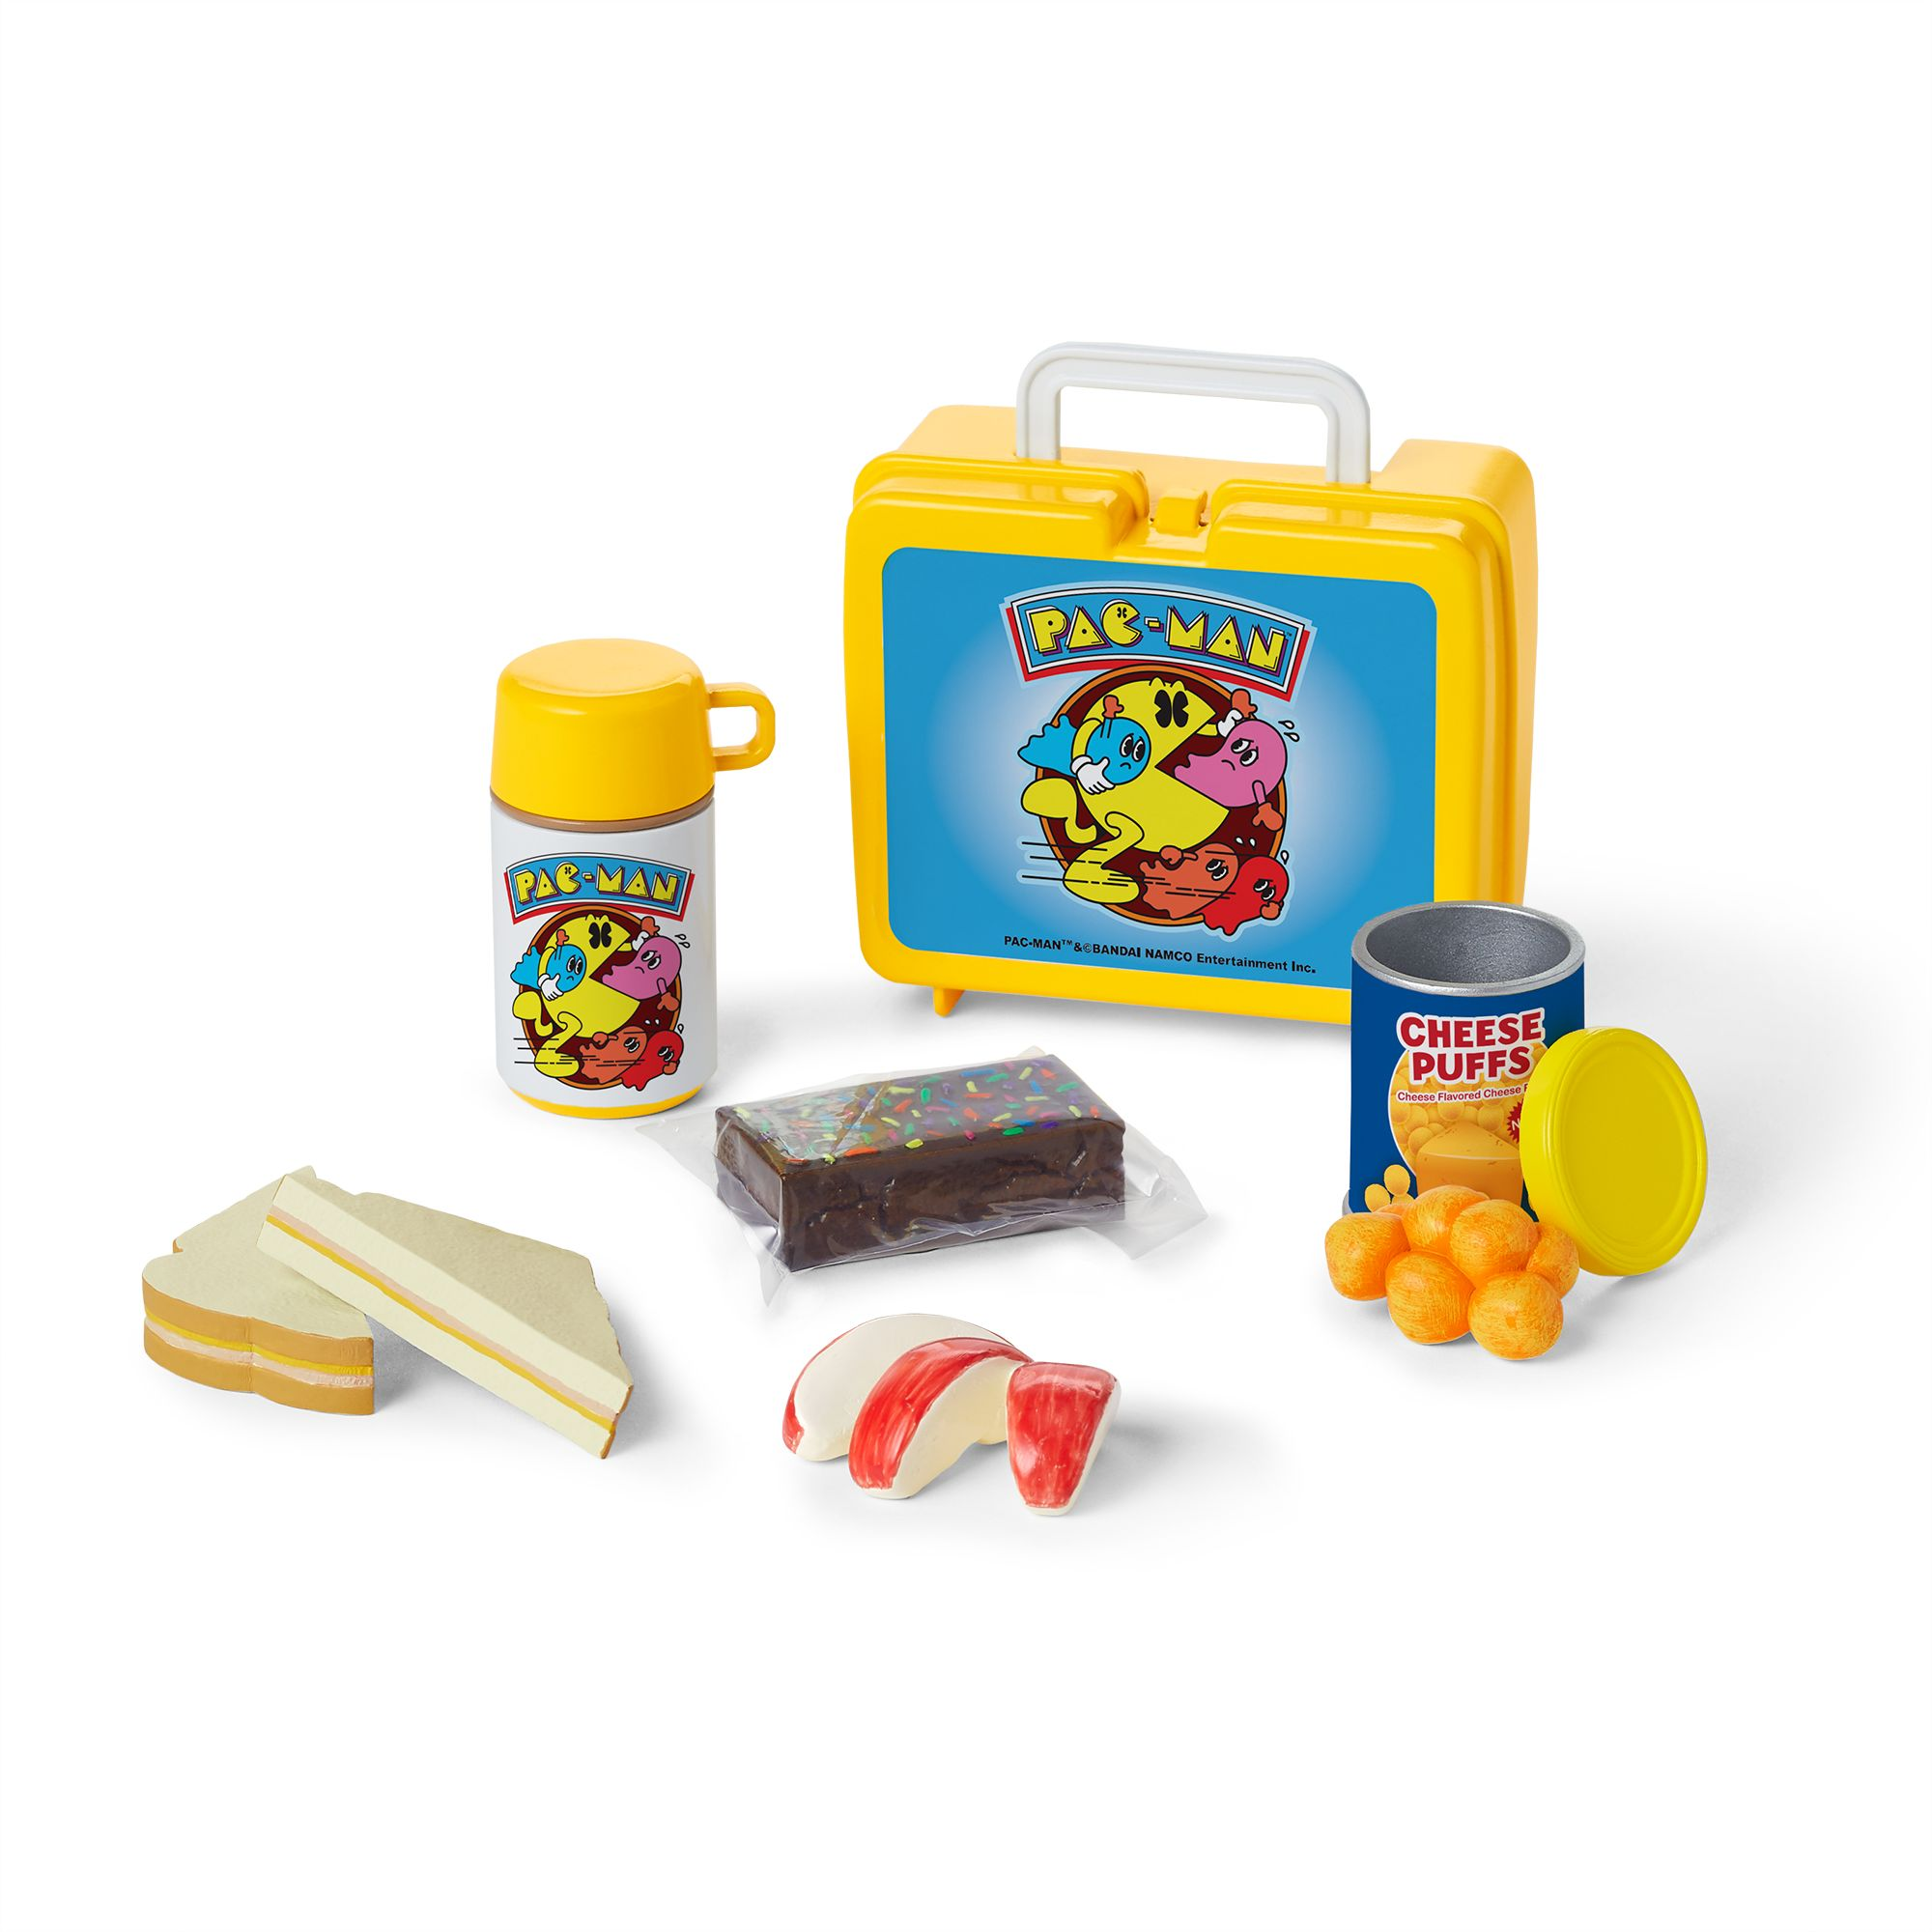 Courtney's PAC-MAN Lunch Set